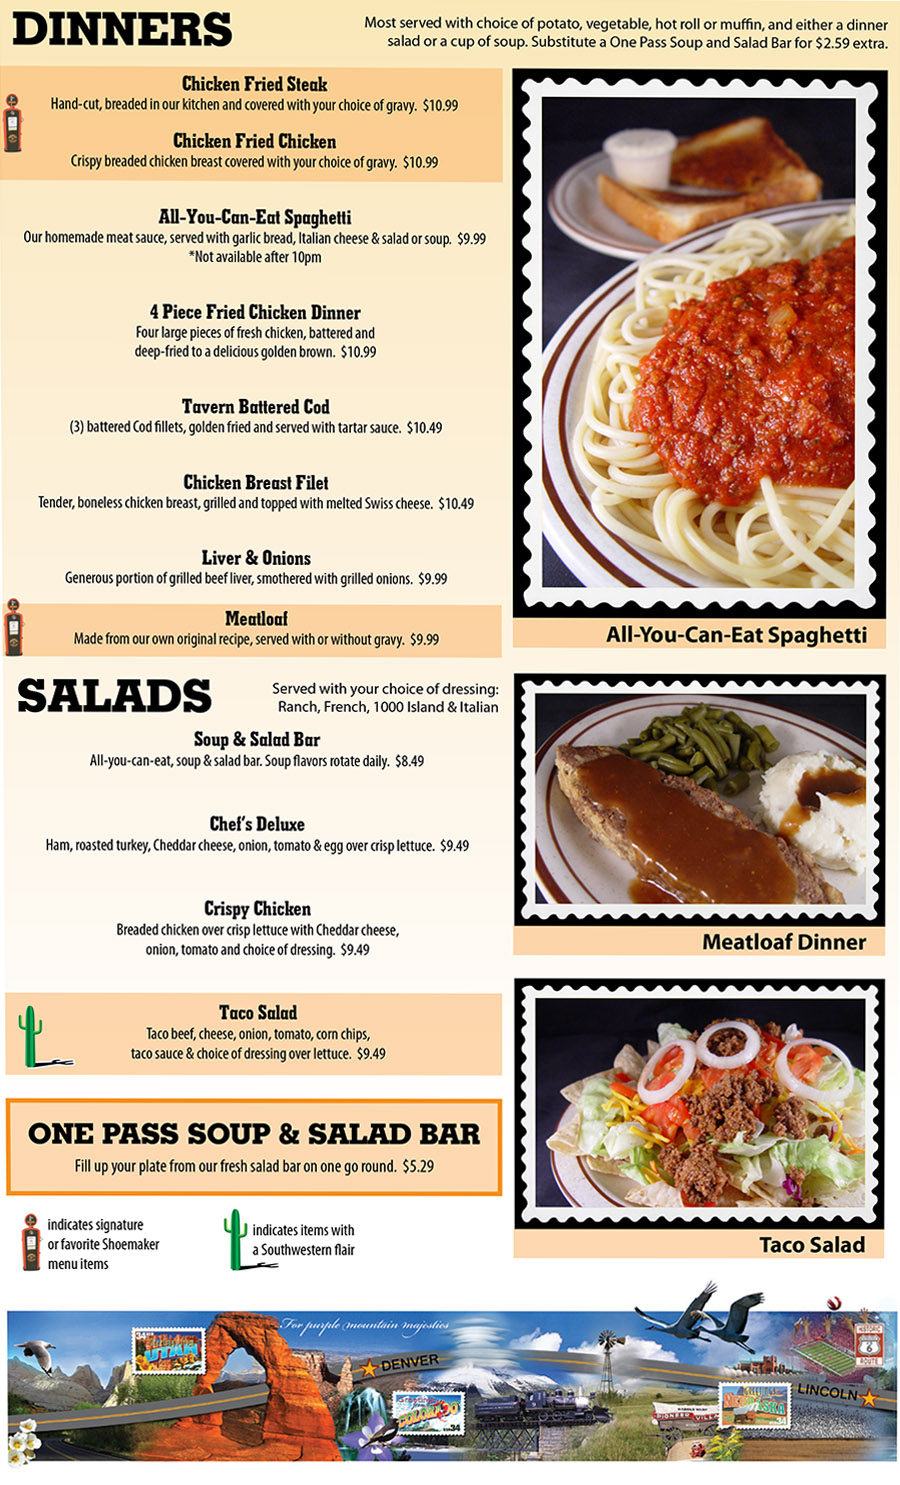 Shoemakers Travel Center Menu - 151 SW 48th St, Lincoln, NE 68522 ...